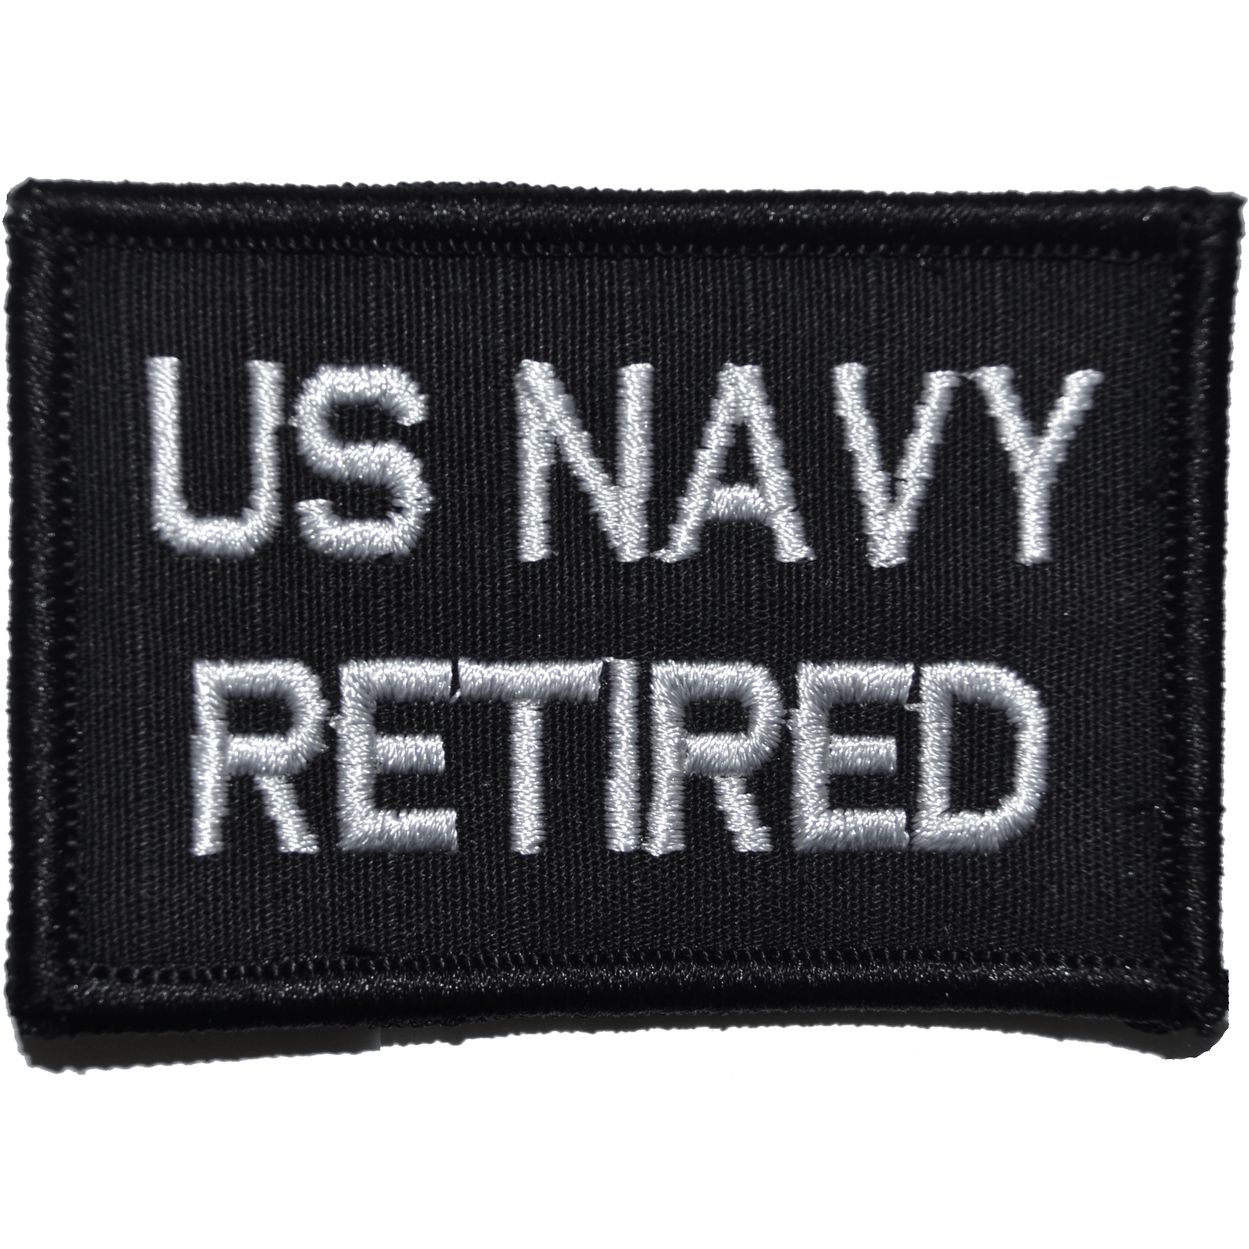 US Navy Retired- 2x3 Patch